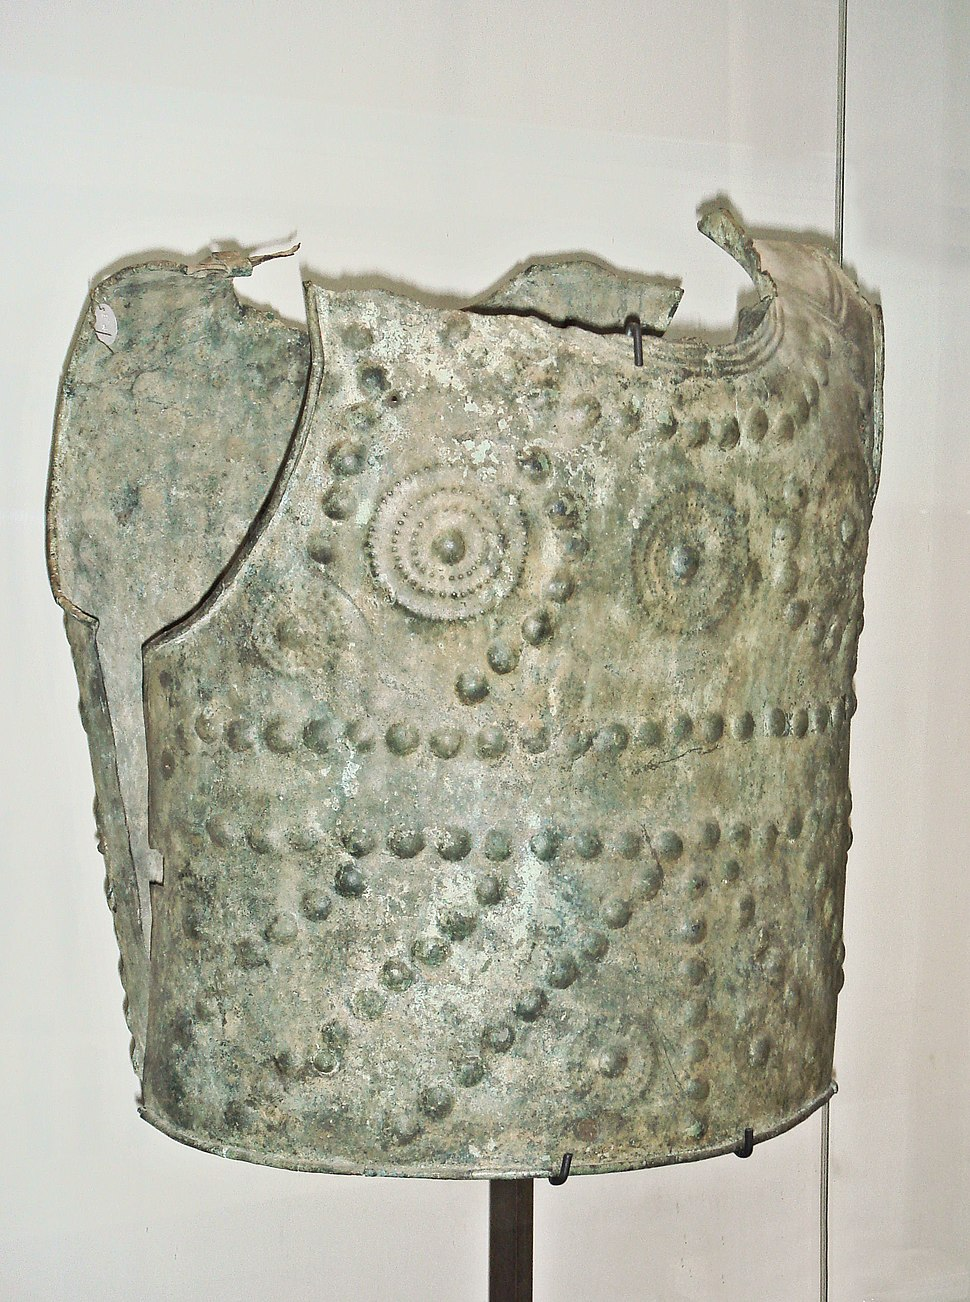 Bronze cuirass 2900g Grenoble end of 7th early 6th century BCE